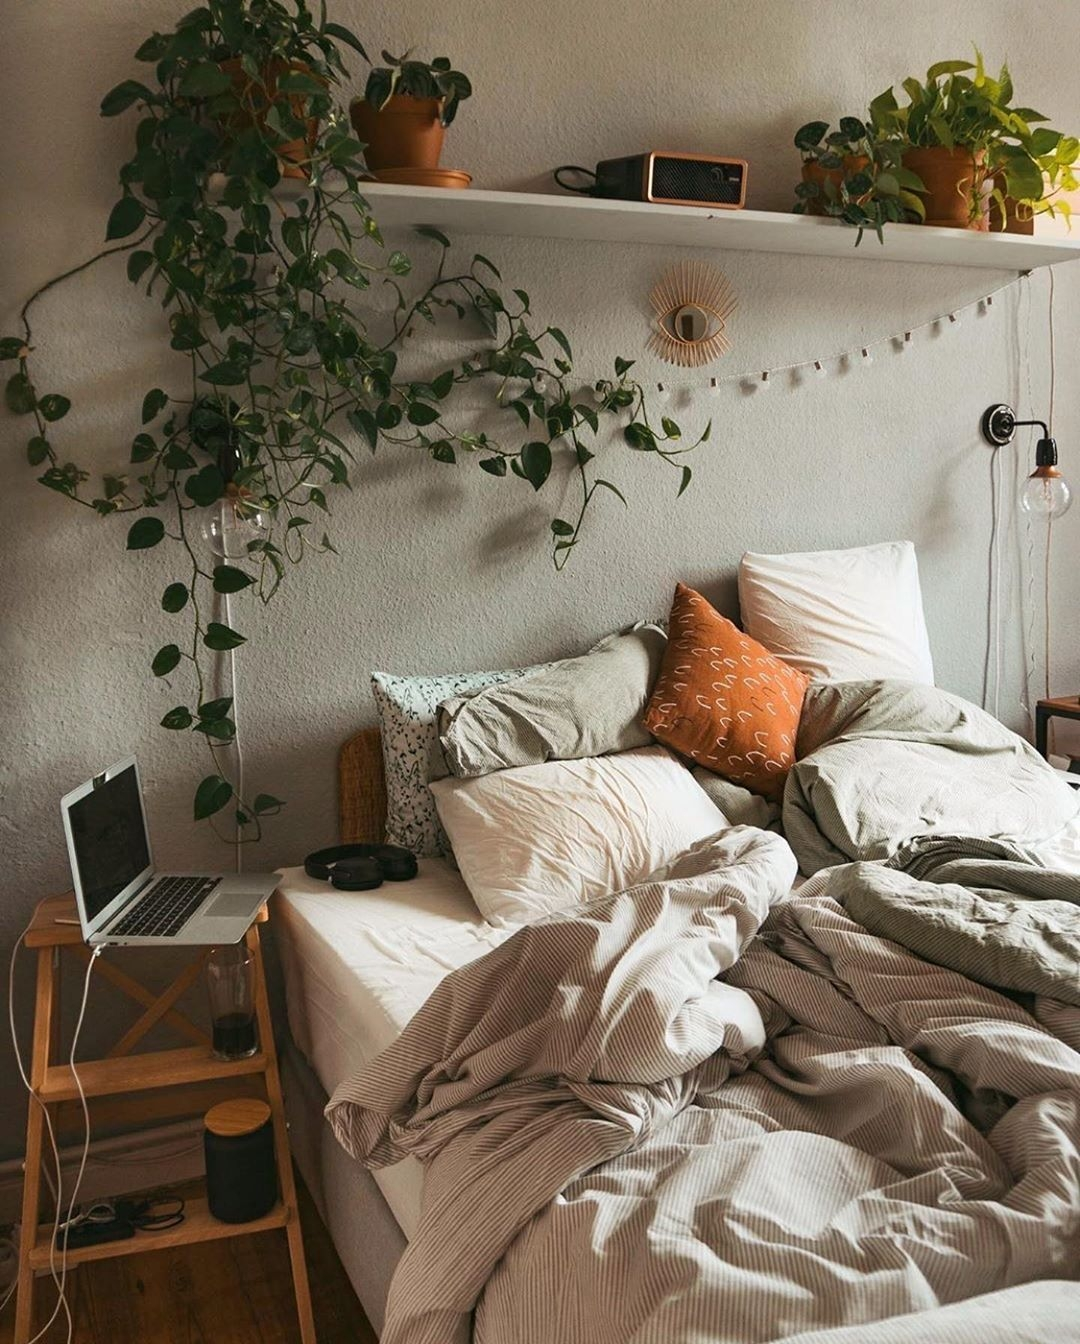 Stunning Design Ideas for Bedrooms On Irresistible 𝙿𝚒𝚗𝚝𝚎𝚛𝚎𝚜𝚝 ヅ 𝚗𝚕𝚊𝚗𝟺𝟷𝟸 ♡゛ On Design Ideas for Bedrooms